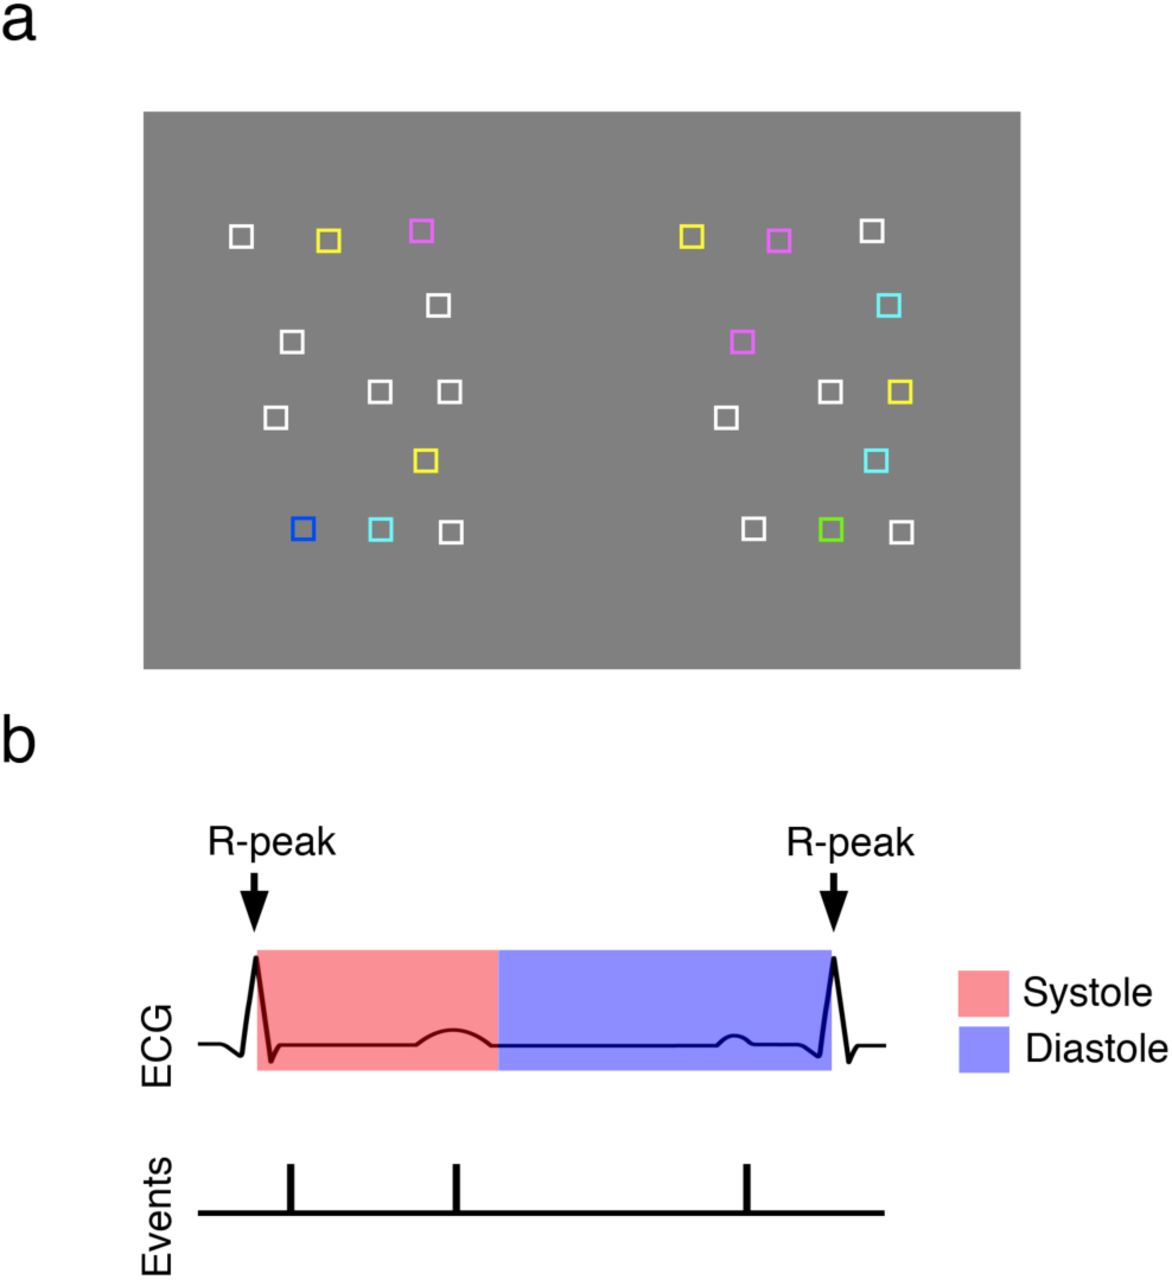 Voluntary visual search is modulated by the cardiac cycle